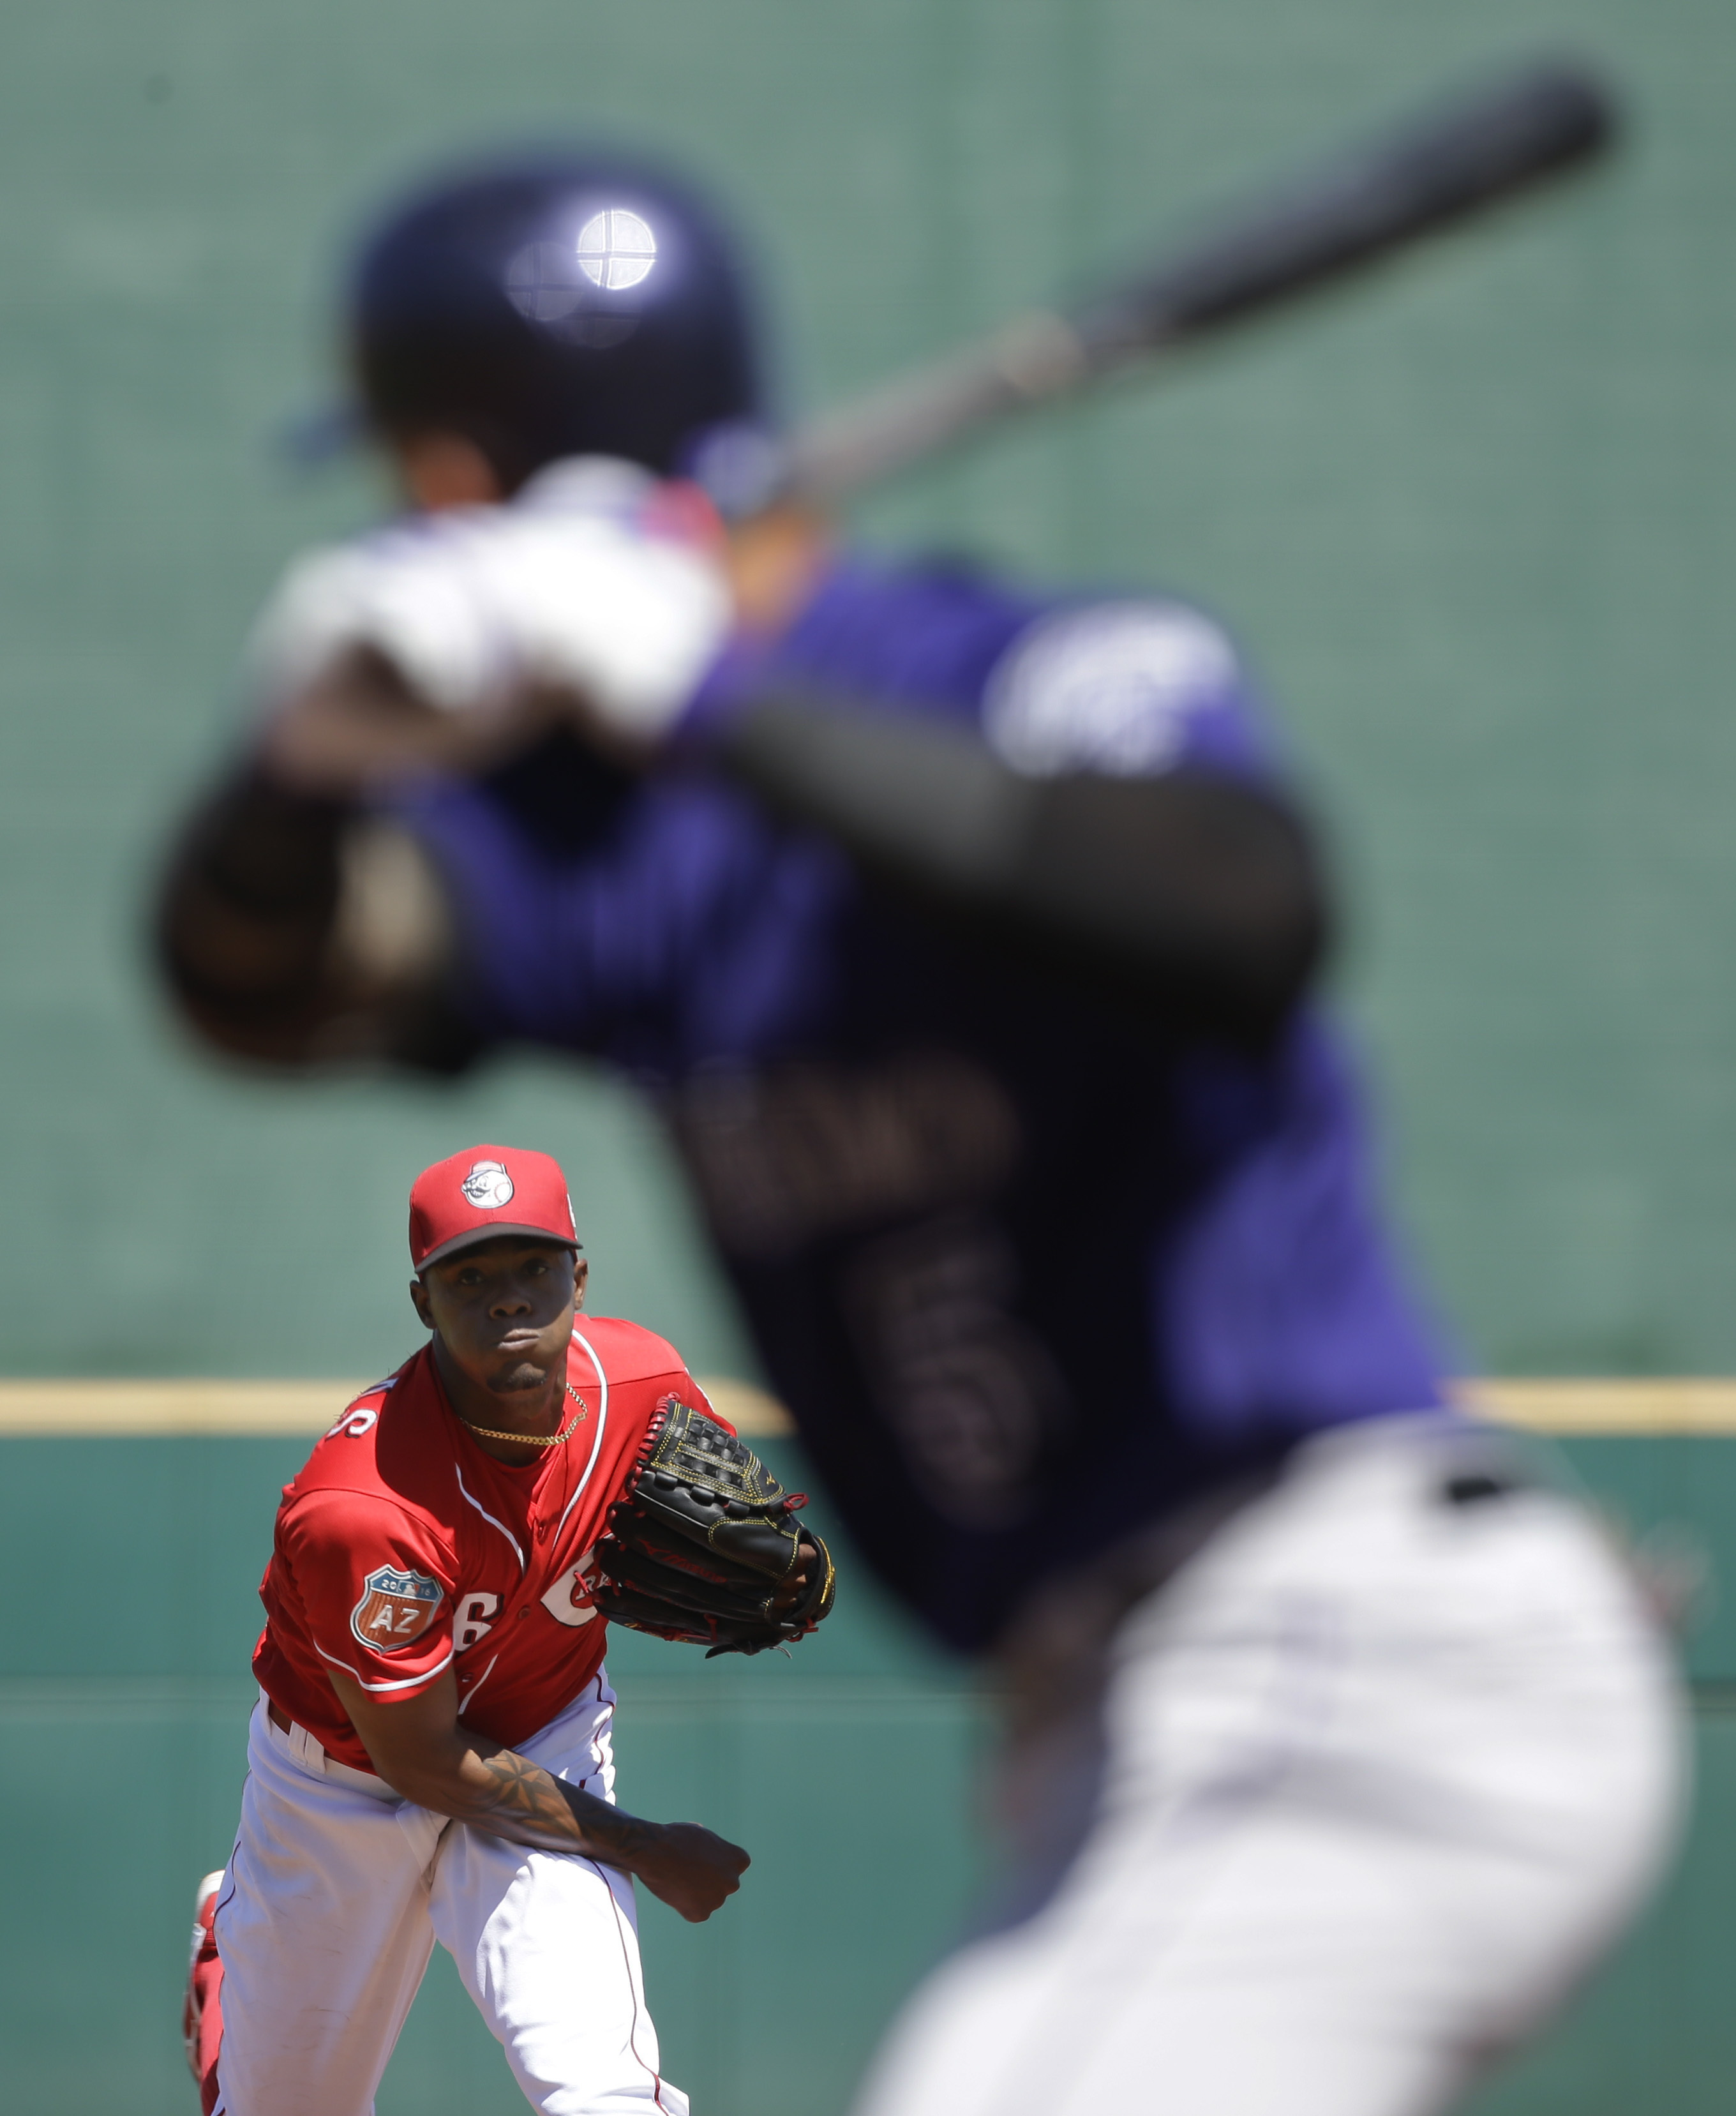 Cincinnati Reds starting pitcher Raisel Iglesias throws to Colorado Rockies' Carlos Gonzalez during the first inning of a spring training baseball game Friday, March 25, 2016, in Goodyear, Ariz. (AP Photo/Jae C. Hong)